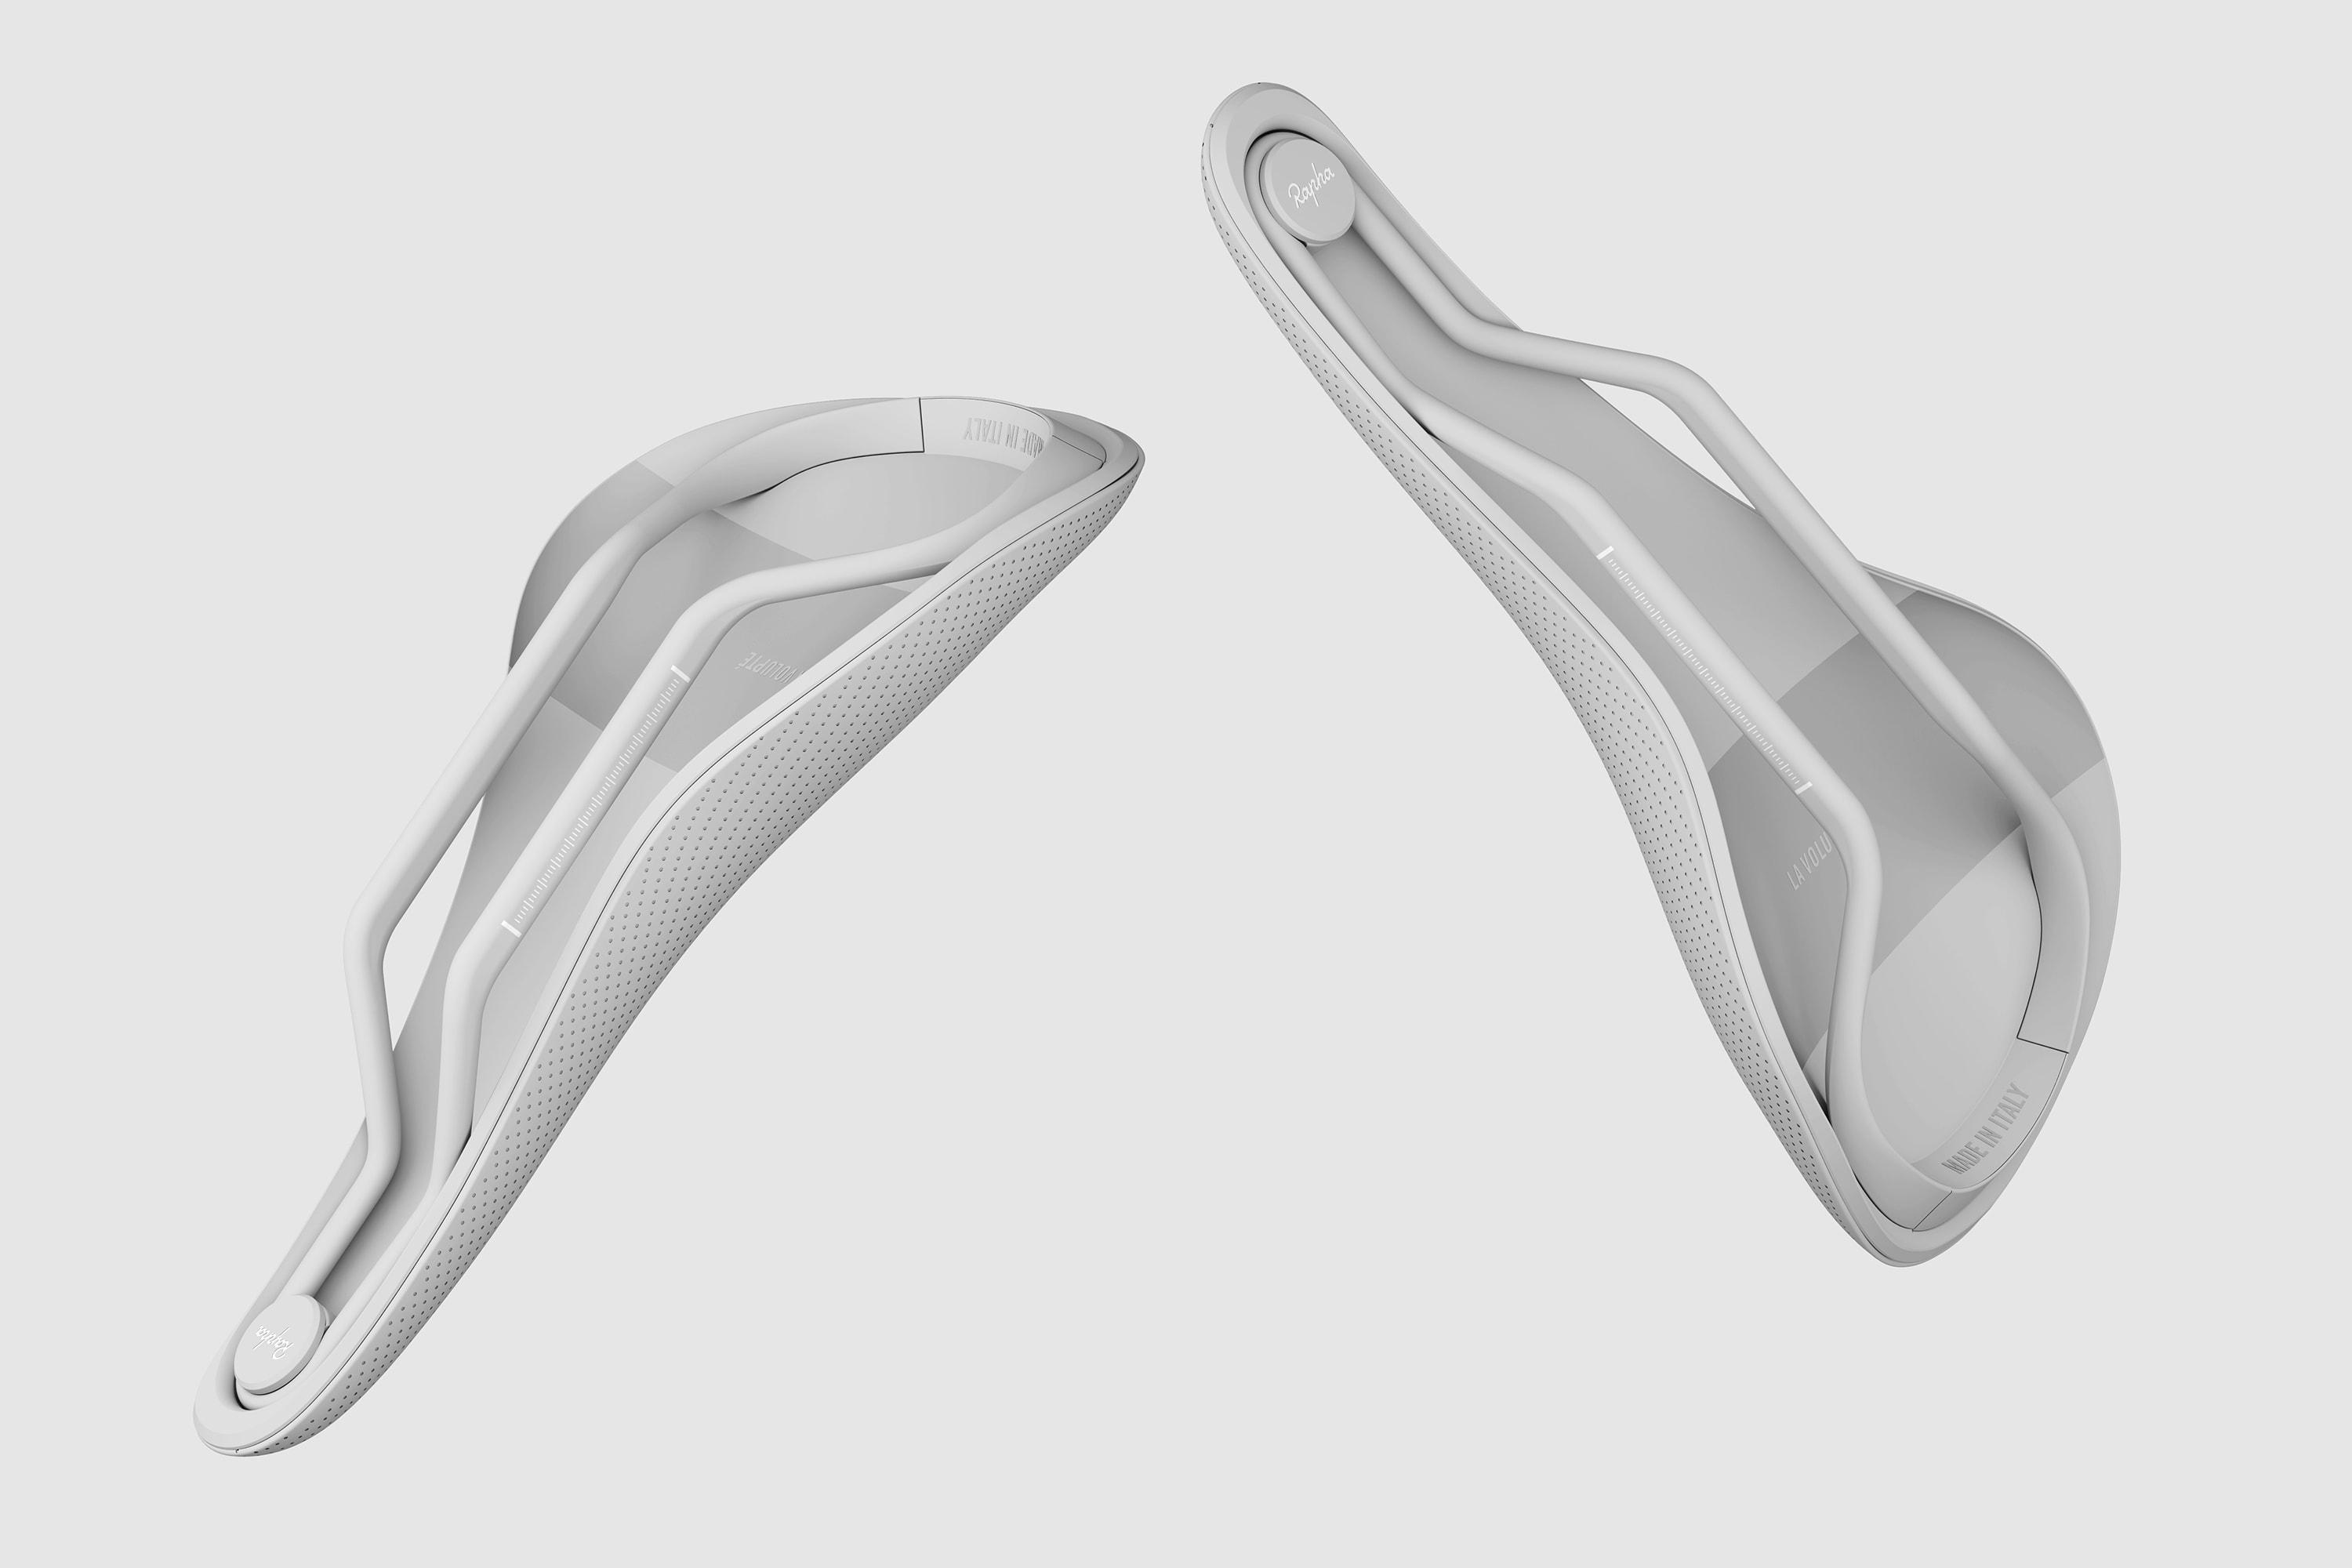 A greyscale render showing a perspective view of two Rapha Saddles floating against a light grey background. The image shows the underside of the saddles with the Rapha logo and parts of the top surface.